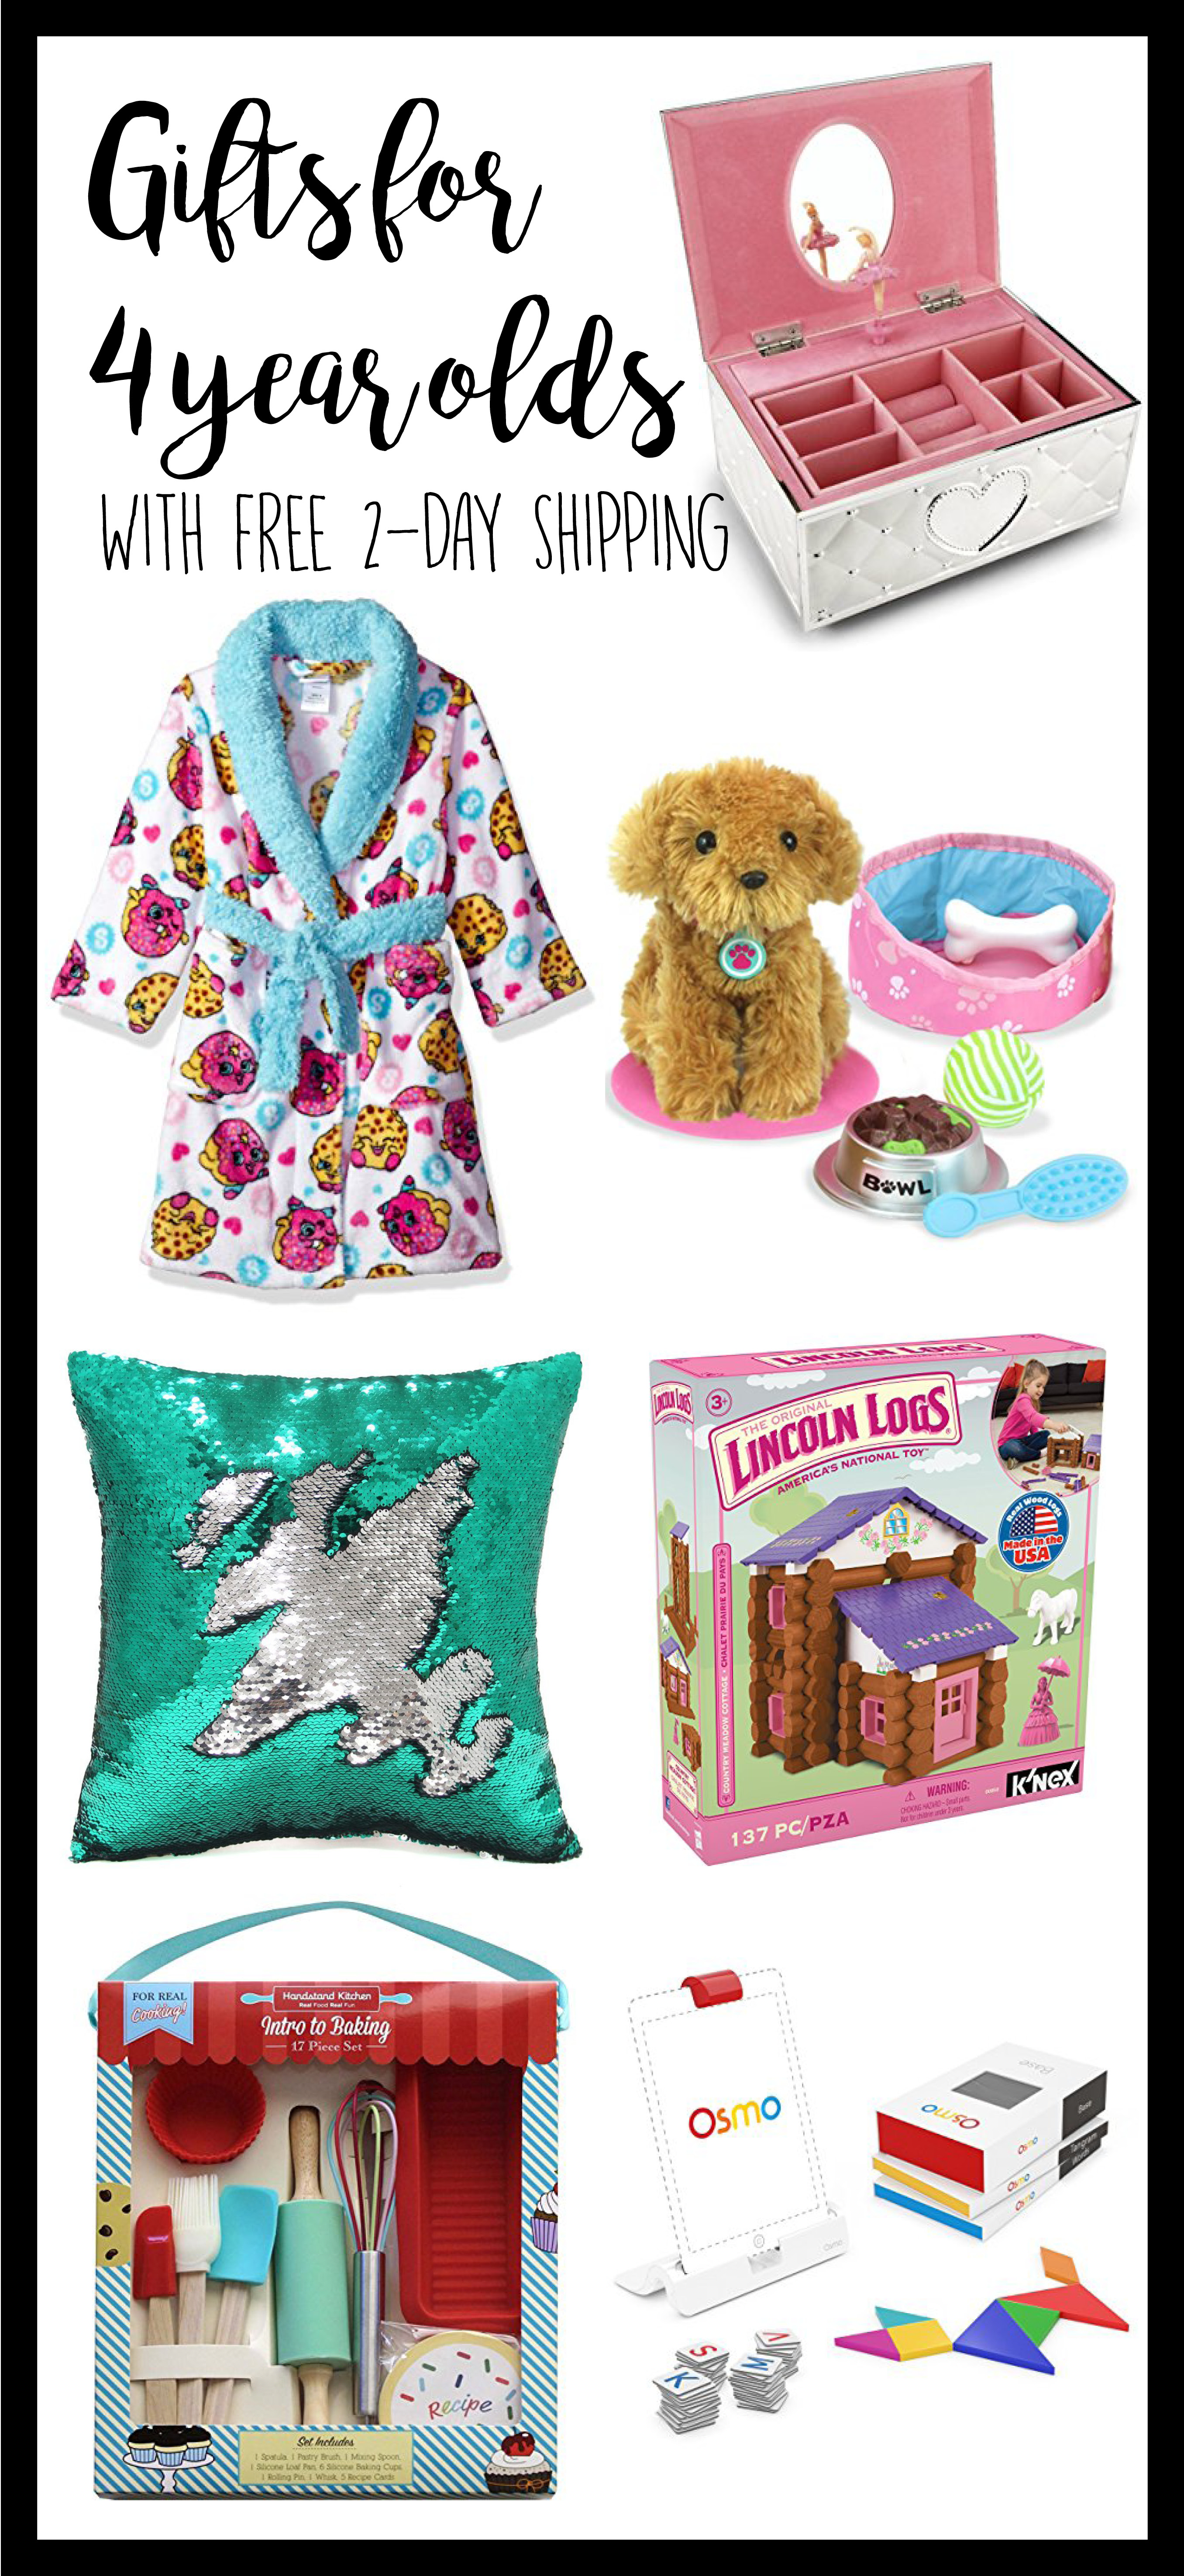 4 Year Old Gift Ideas Gift Ideas For 4 Year Old Girls